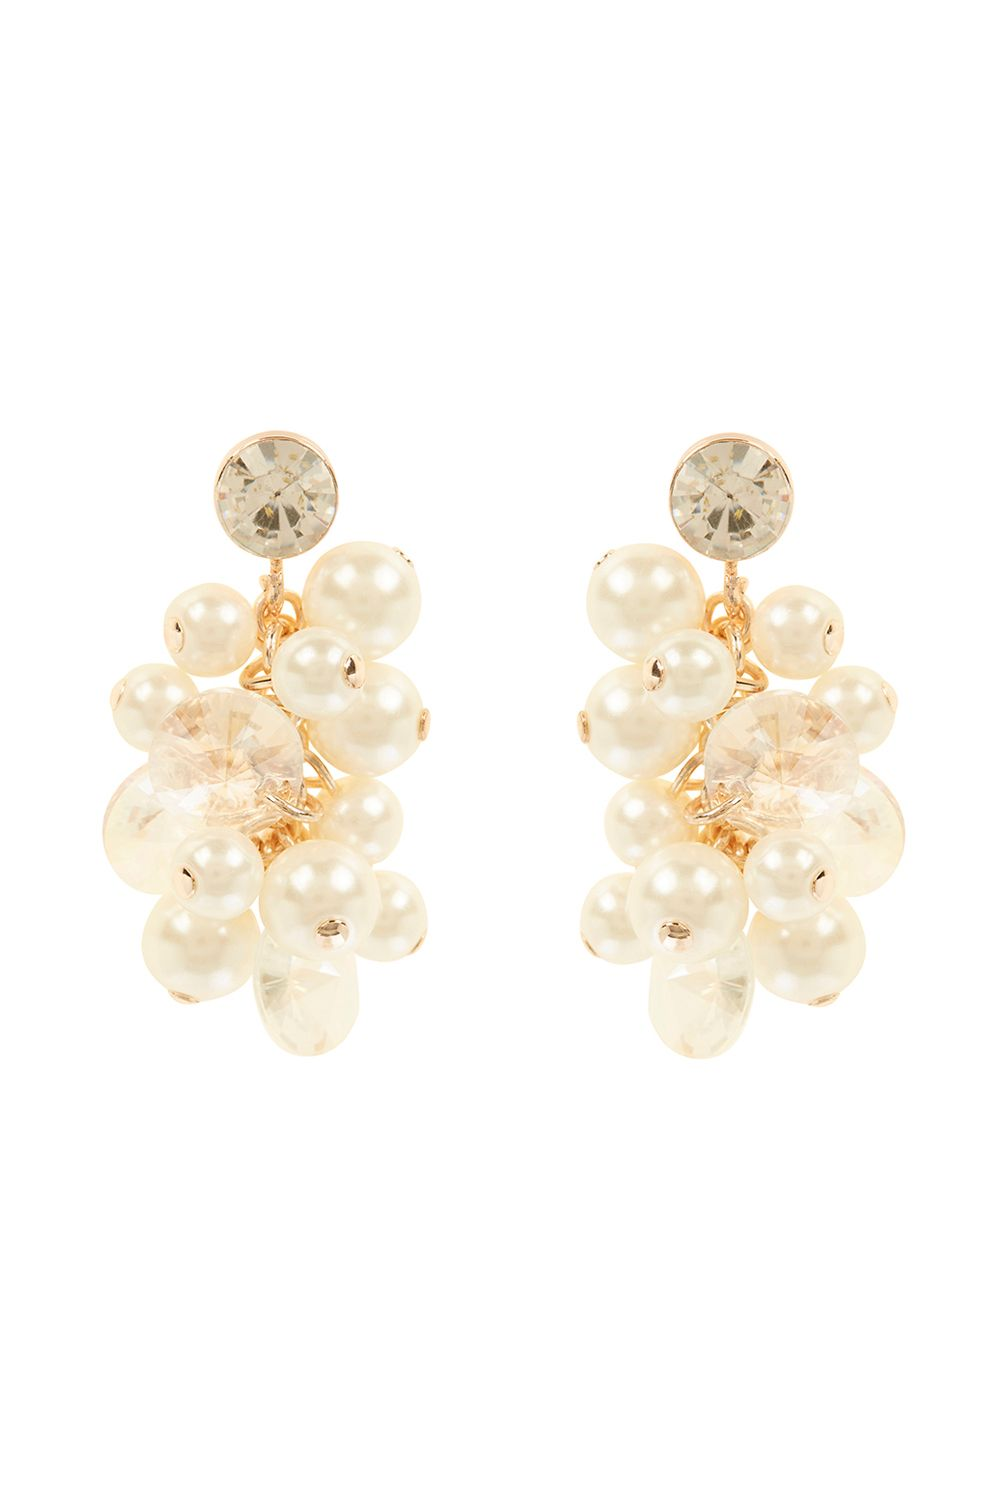 Coast Adara Pearl Earrings, Multi-Coloured